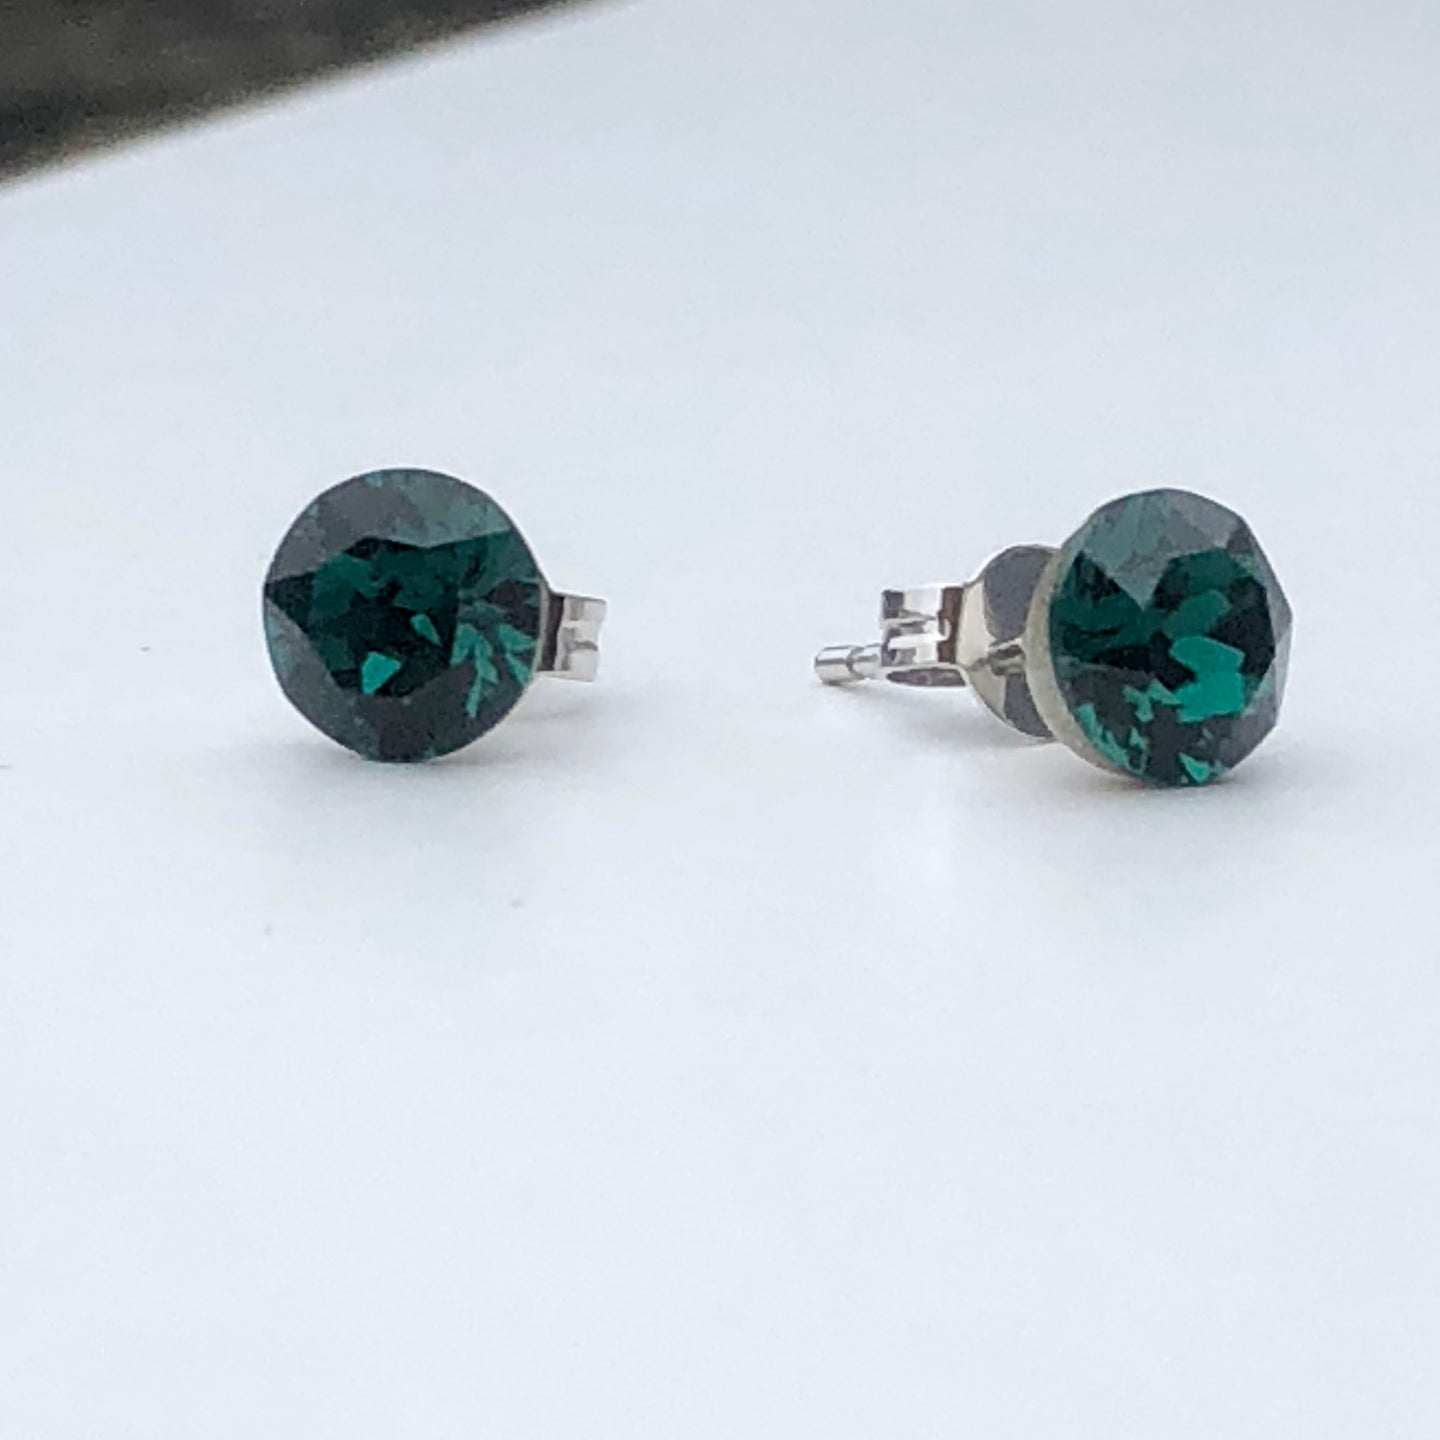 Emerald Green Swarovski Crystal Stud Earrings